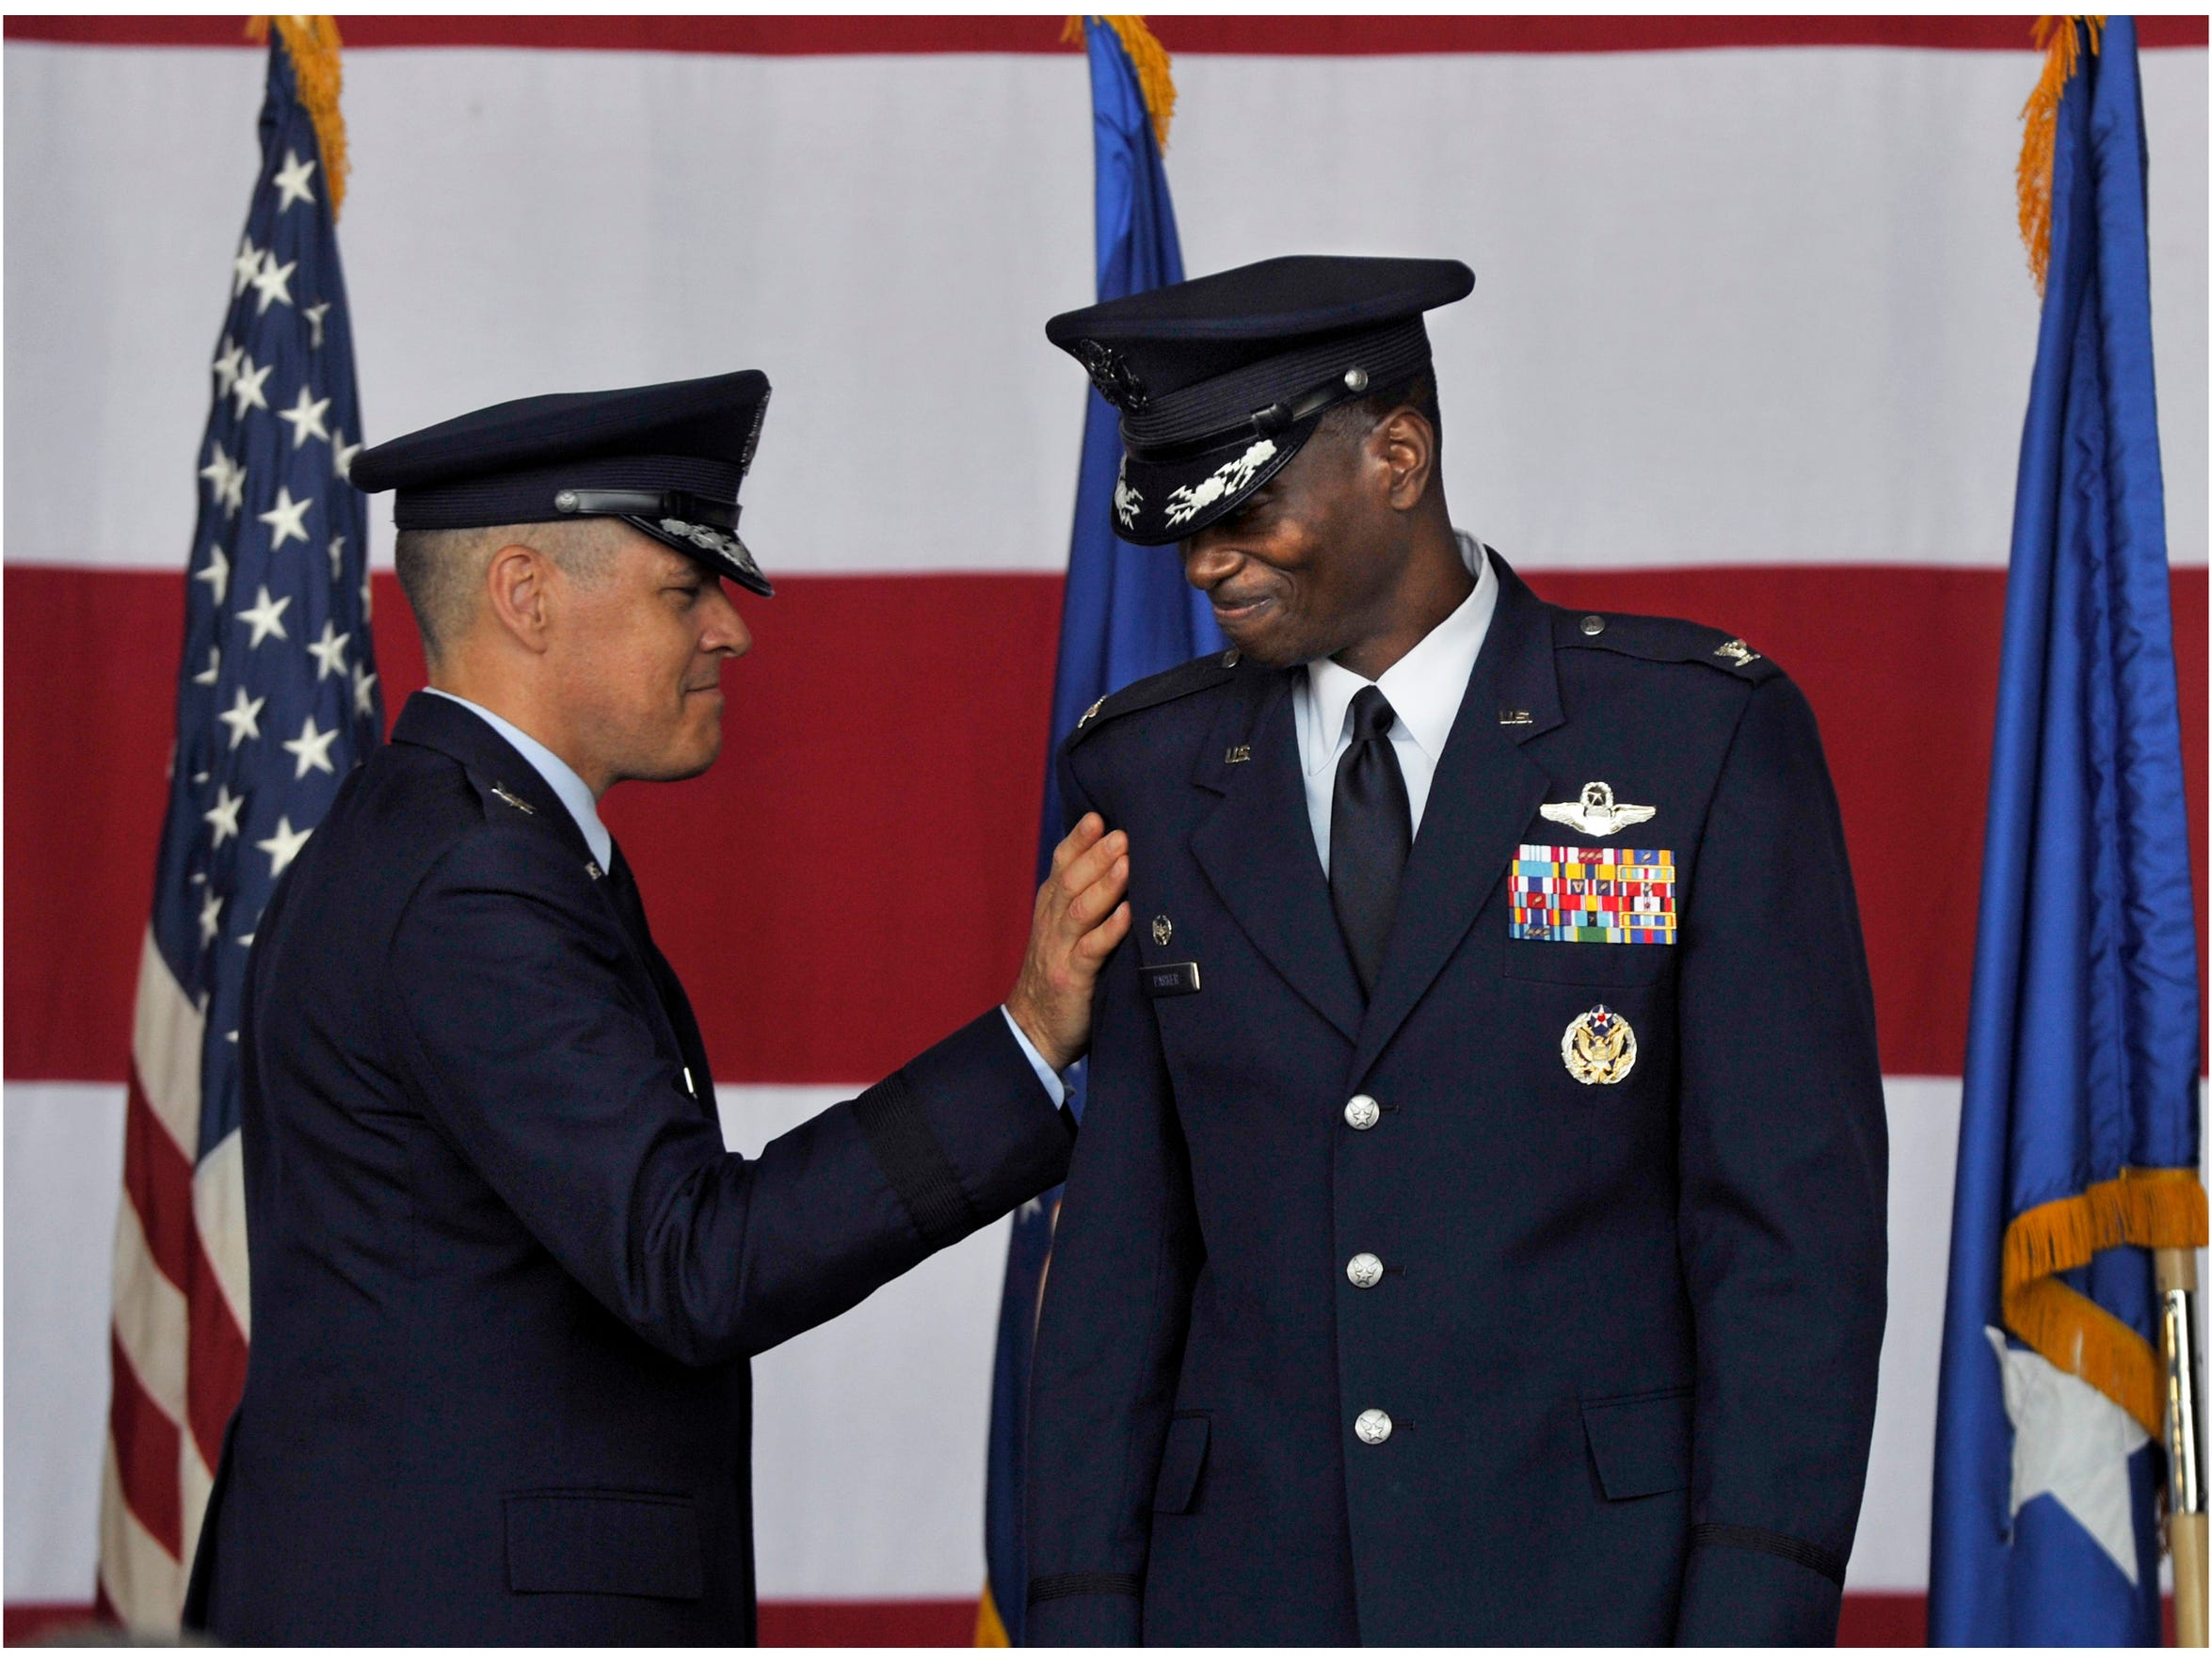 Eighth Air Force commander Major Gen. Thomas Bussiere pats Col. Brandon Parker on the shoulder after officially naming Parker as 7th Bomb Wing commander Aug. 4 at Dyess Air Force Base. Parker, the first African-American Dyess commander, assumed command of the base from Col. David Benson in a change of command ceremony.